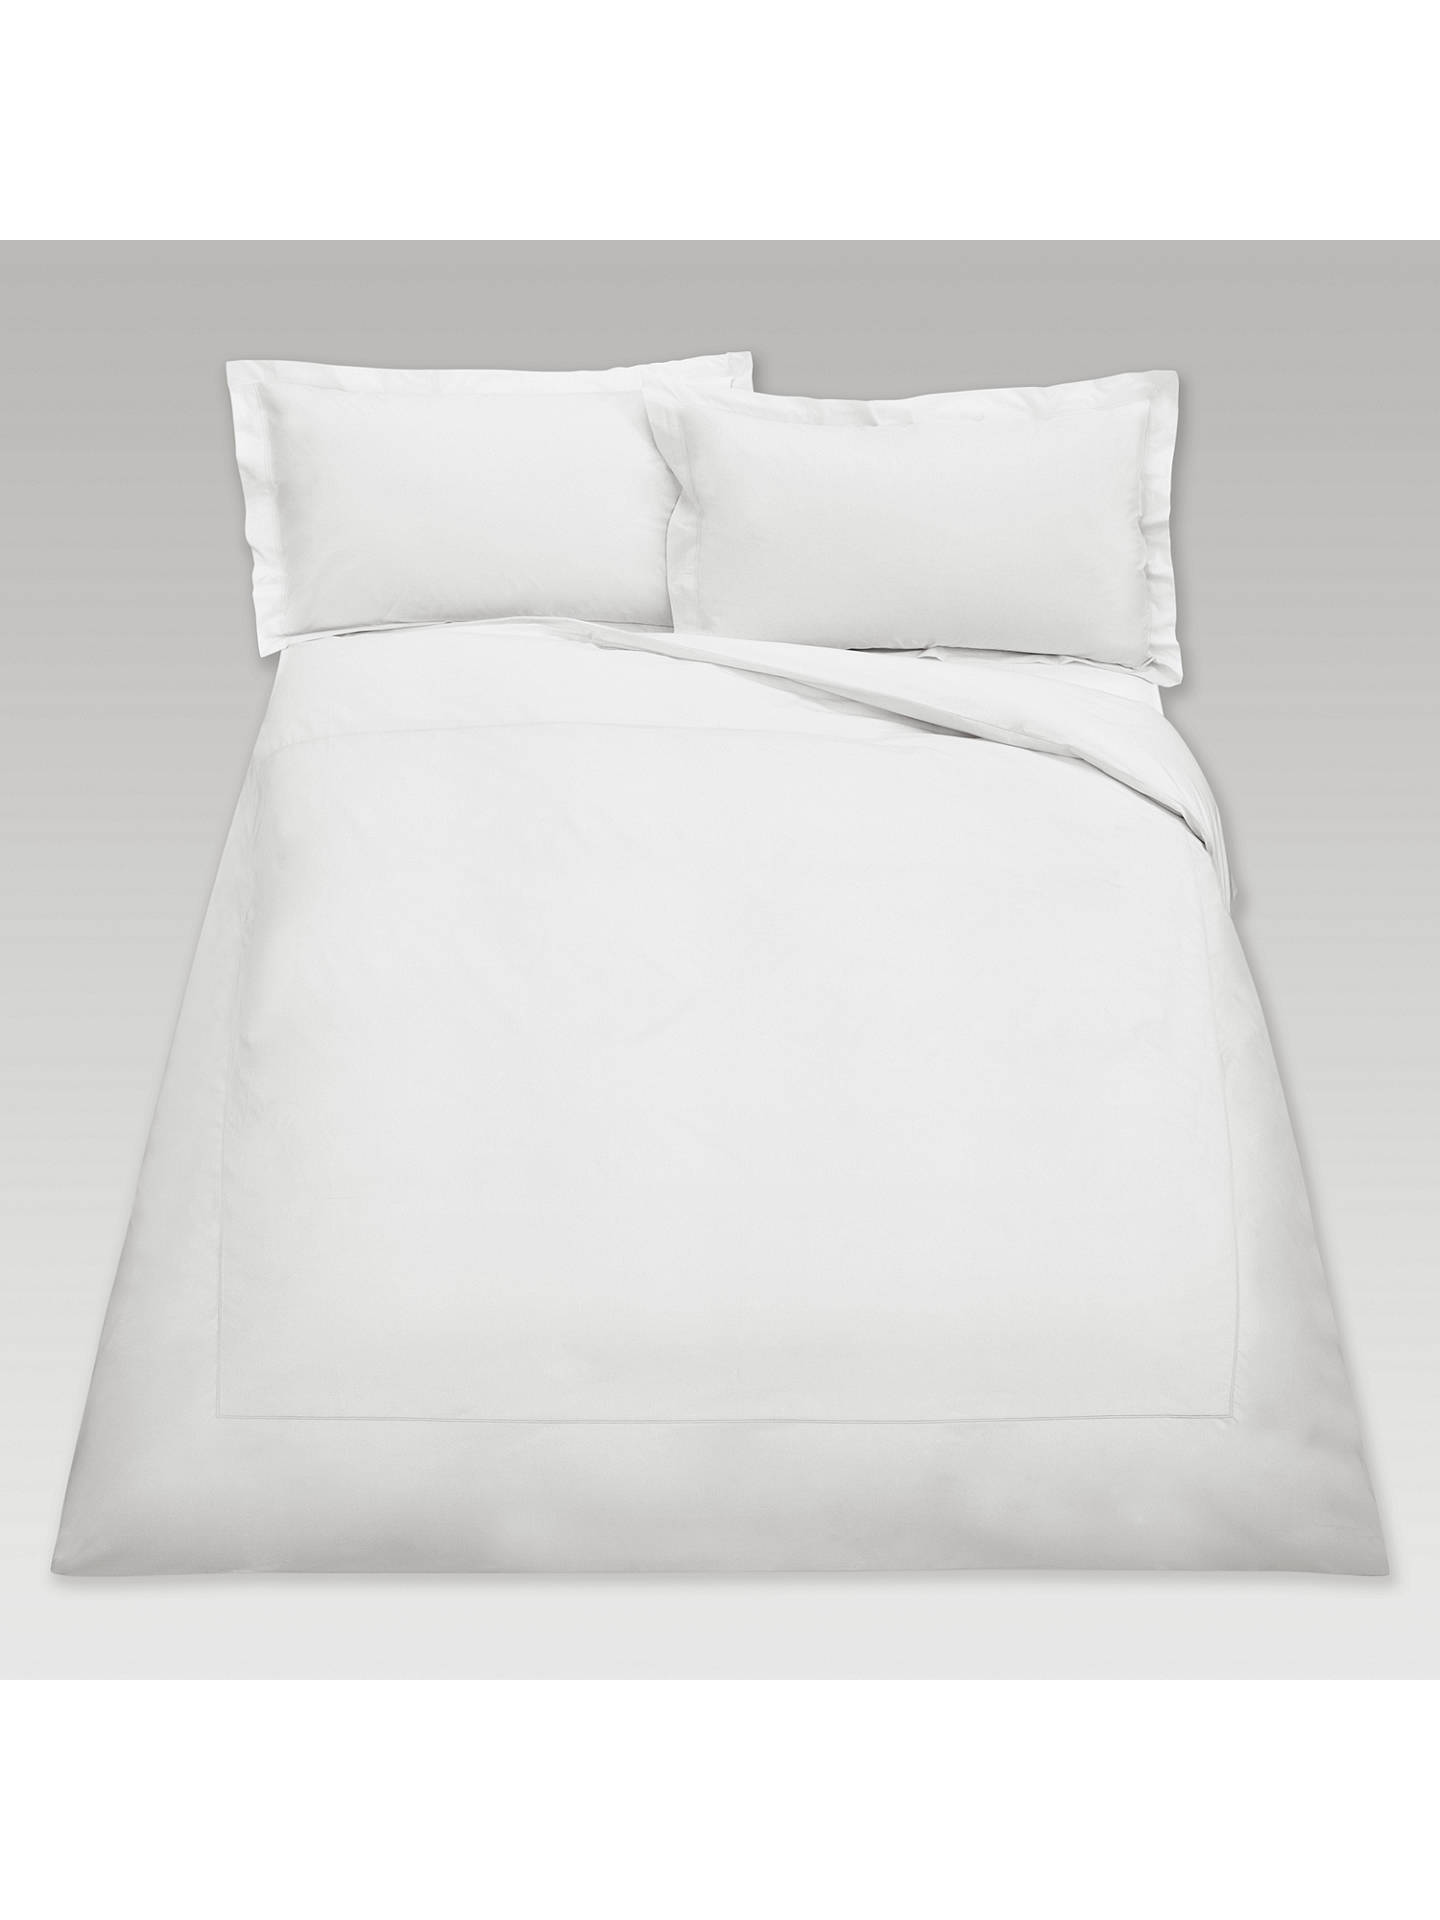 BuyPeter Reed Egyptian Cotton 2 Row Cord Oxford Pillowcase, White Online at johnlewis.com